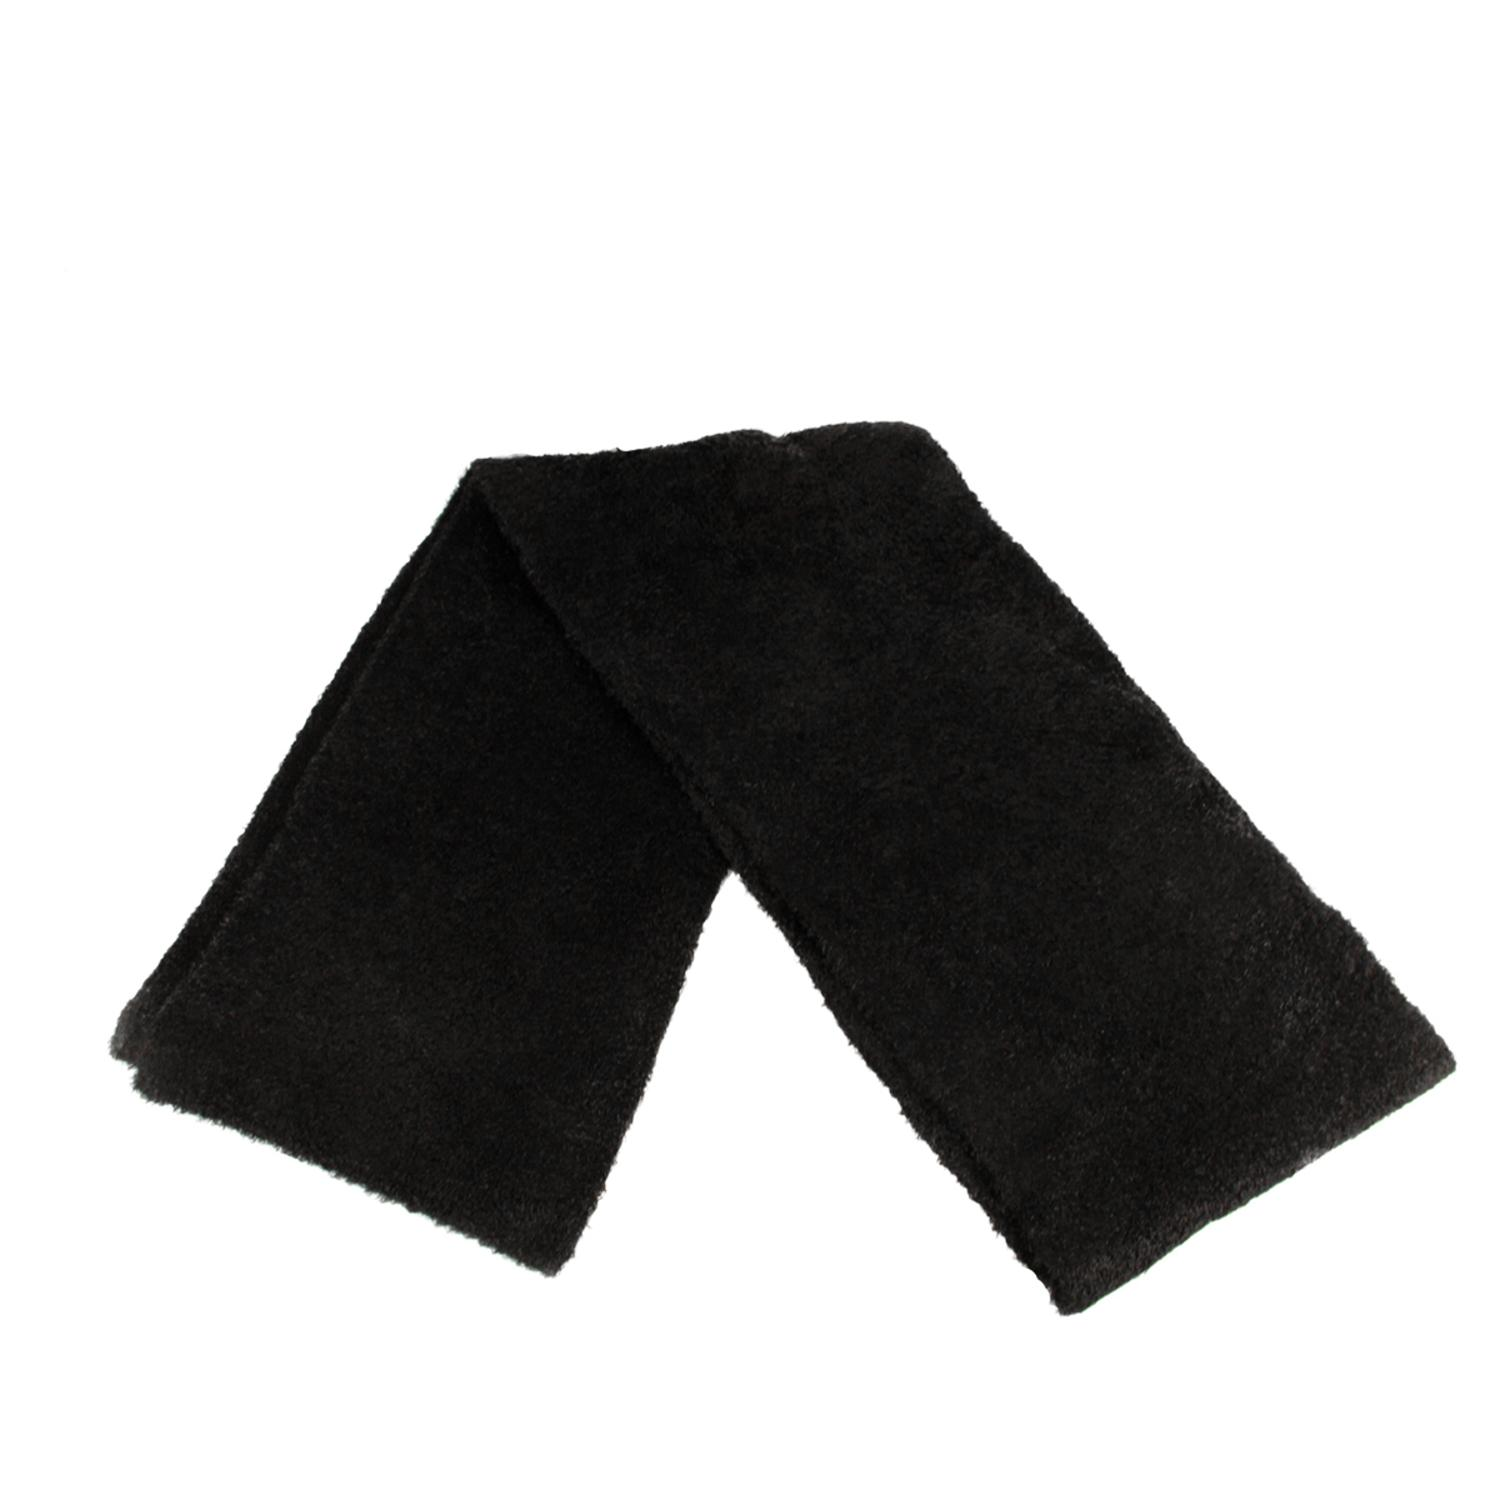 ''52'''' Women's Black Aloe Vera Plush Winter SCARF''